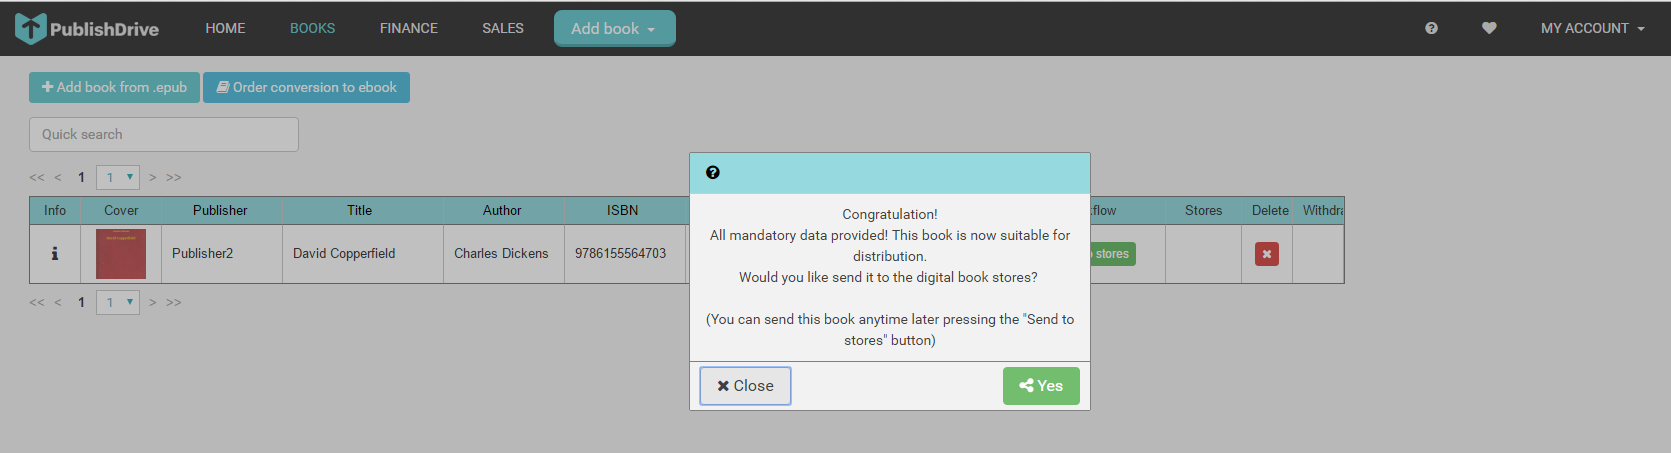 Publish a book in Publishdrive